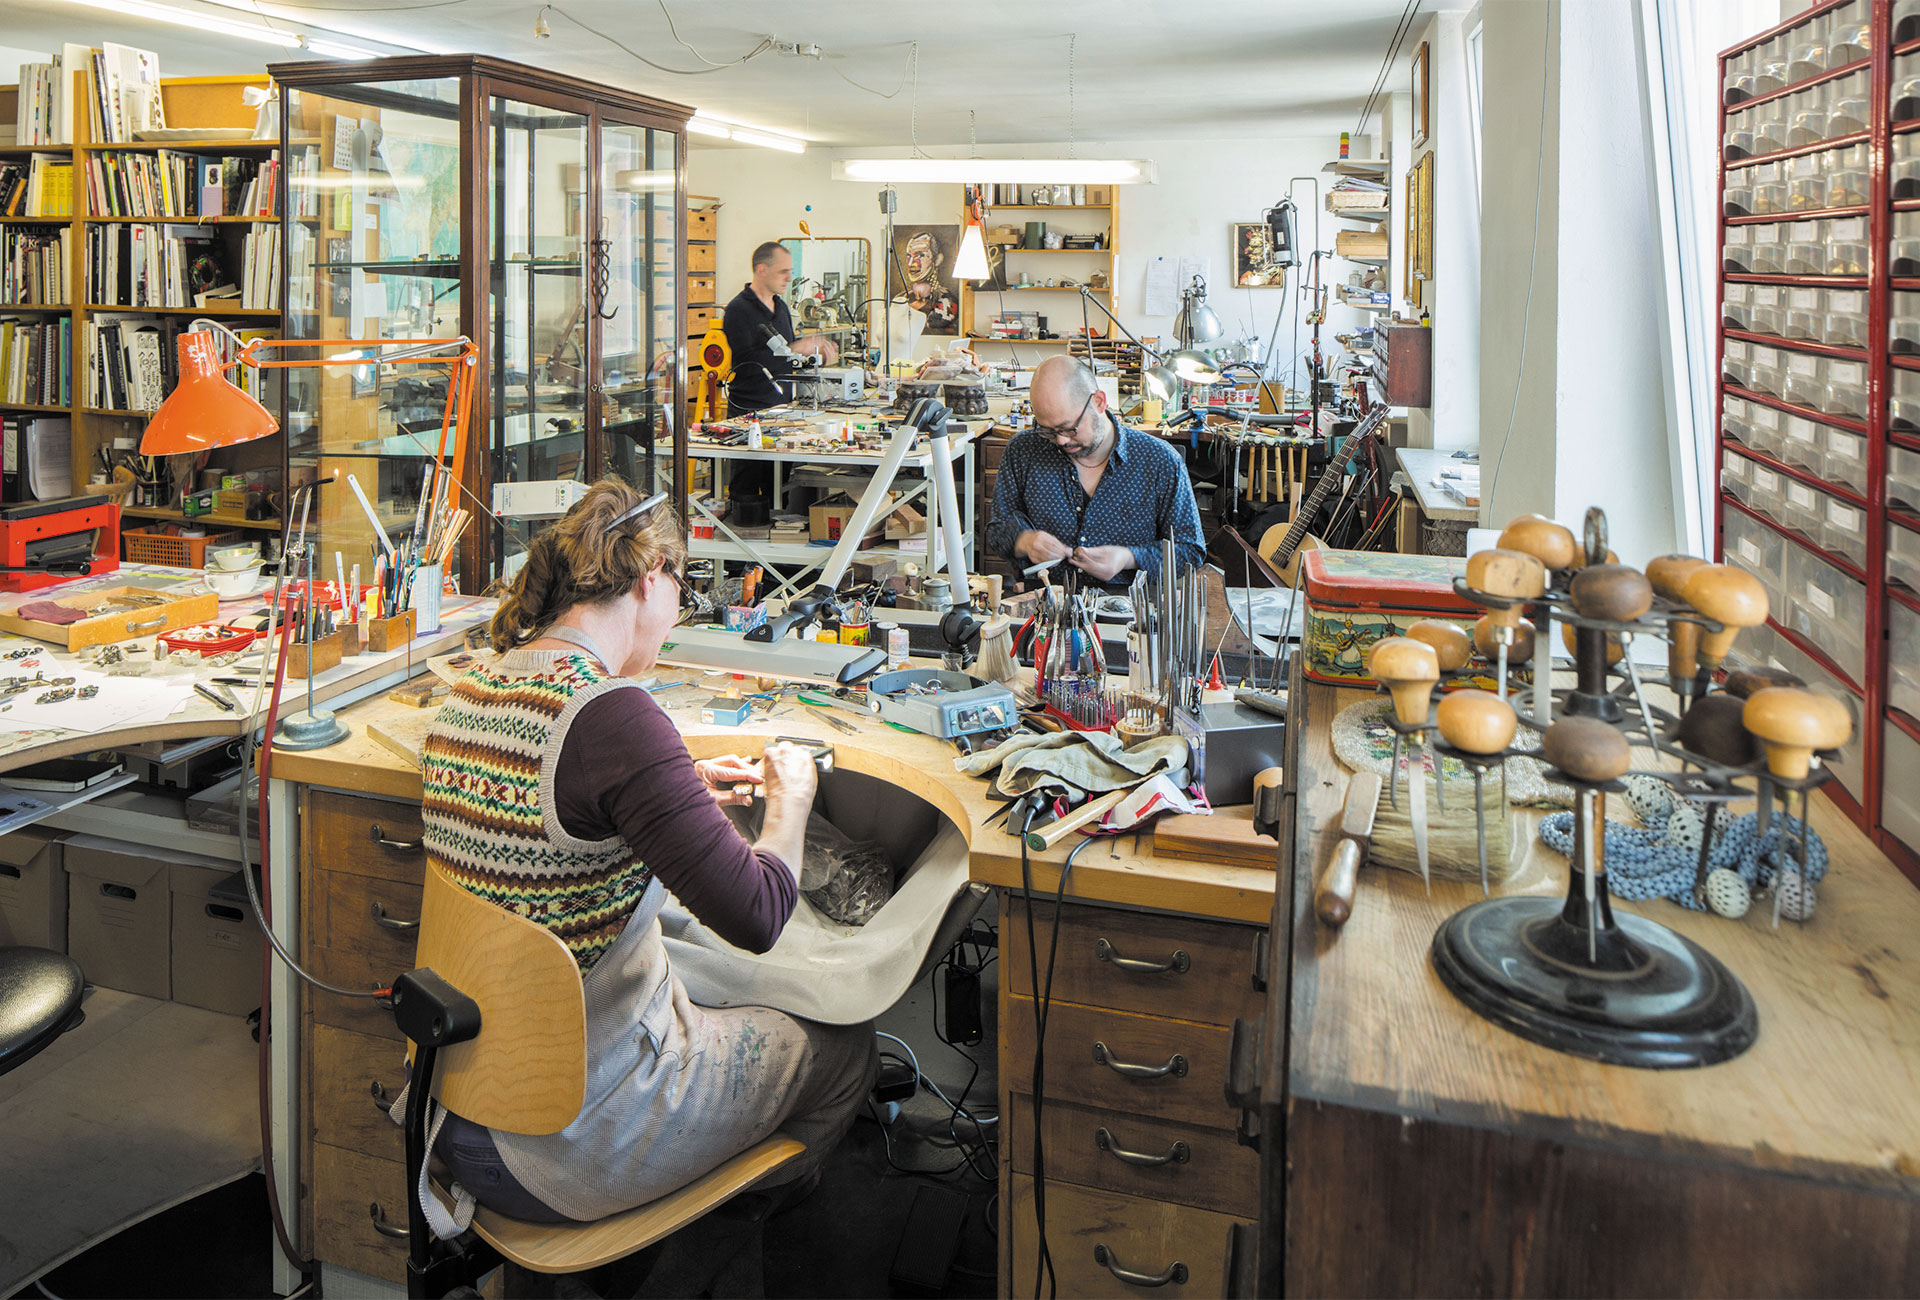 Atelier, Munich, photograph courtesy of the artists